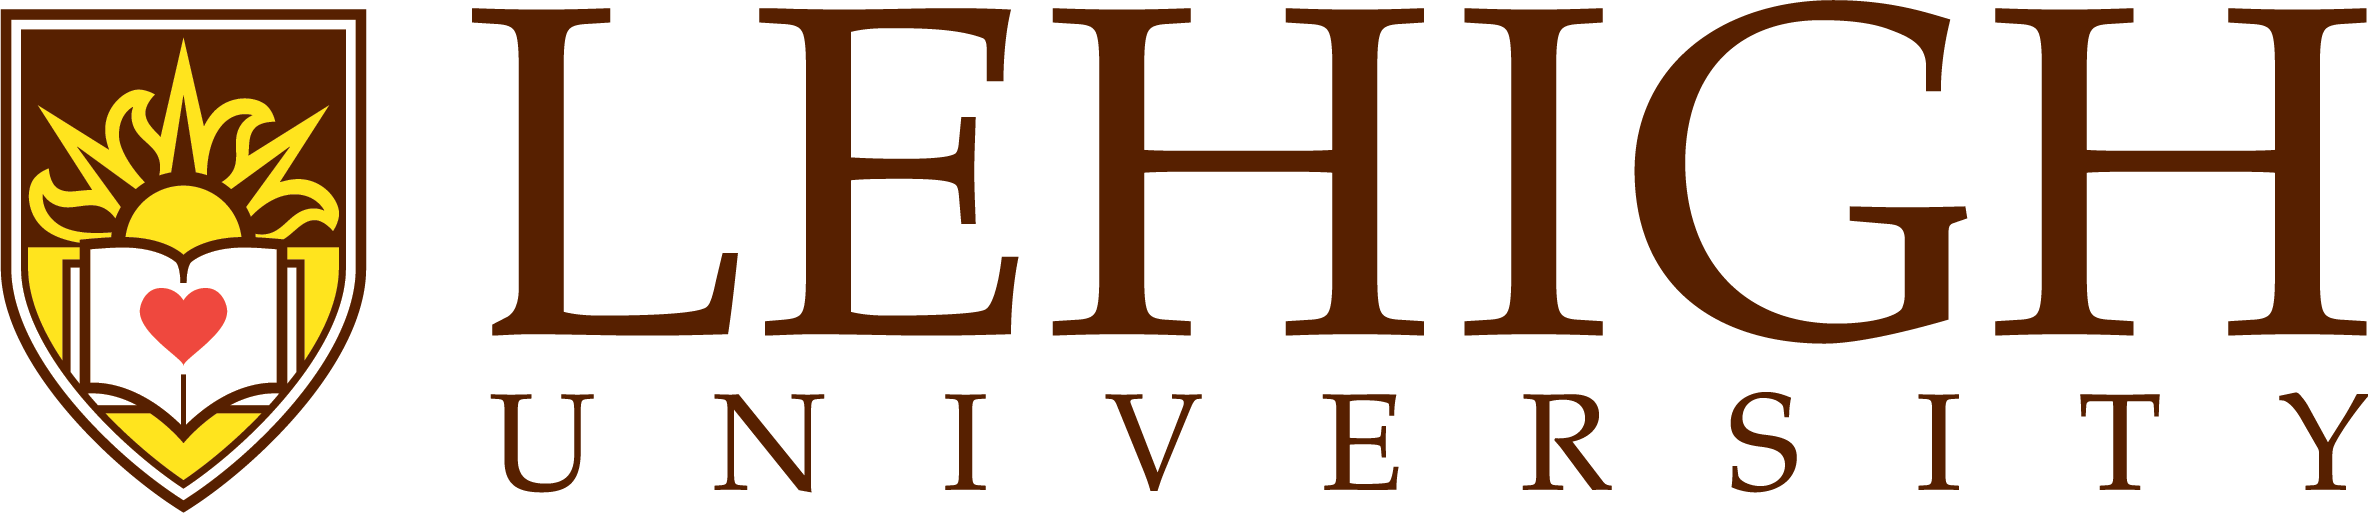 LehighU_official-logo_Color.png